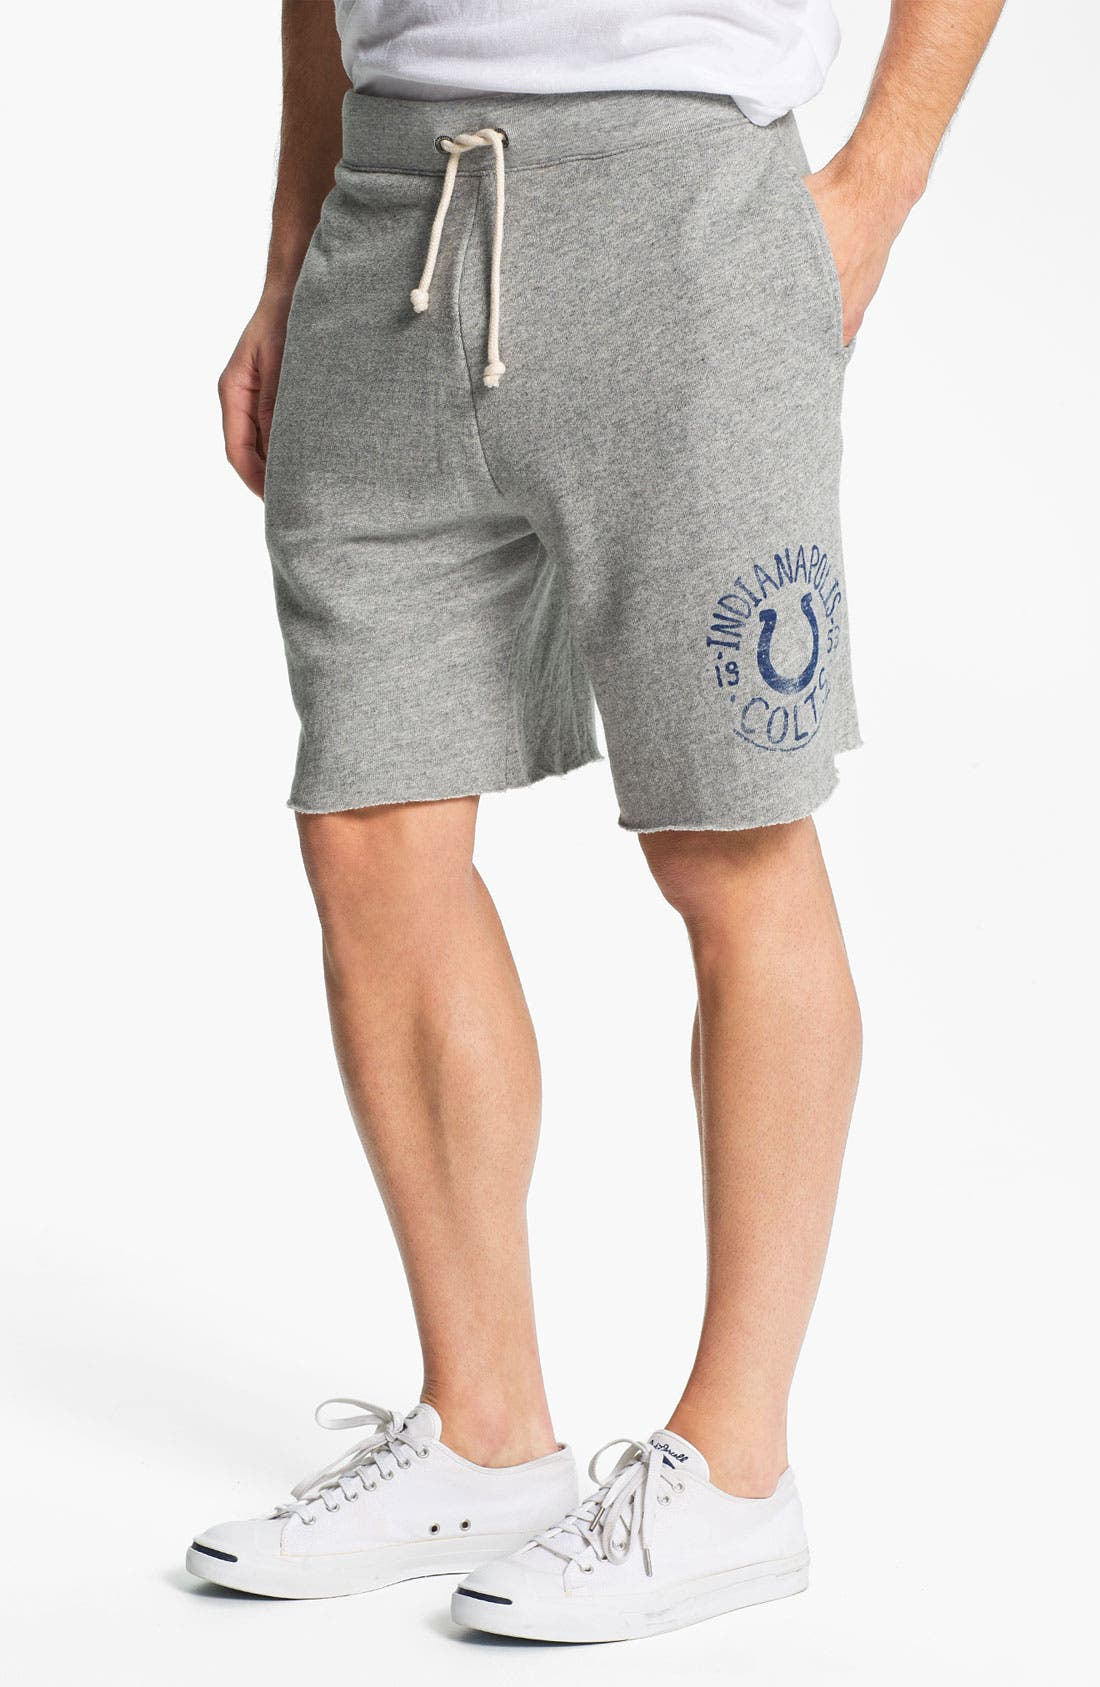 Alternate Image 1 Selected - Junk Food 'Indianapolis Colts' Athletic Shorts